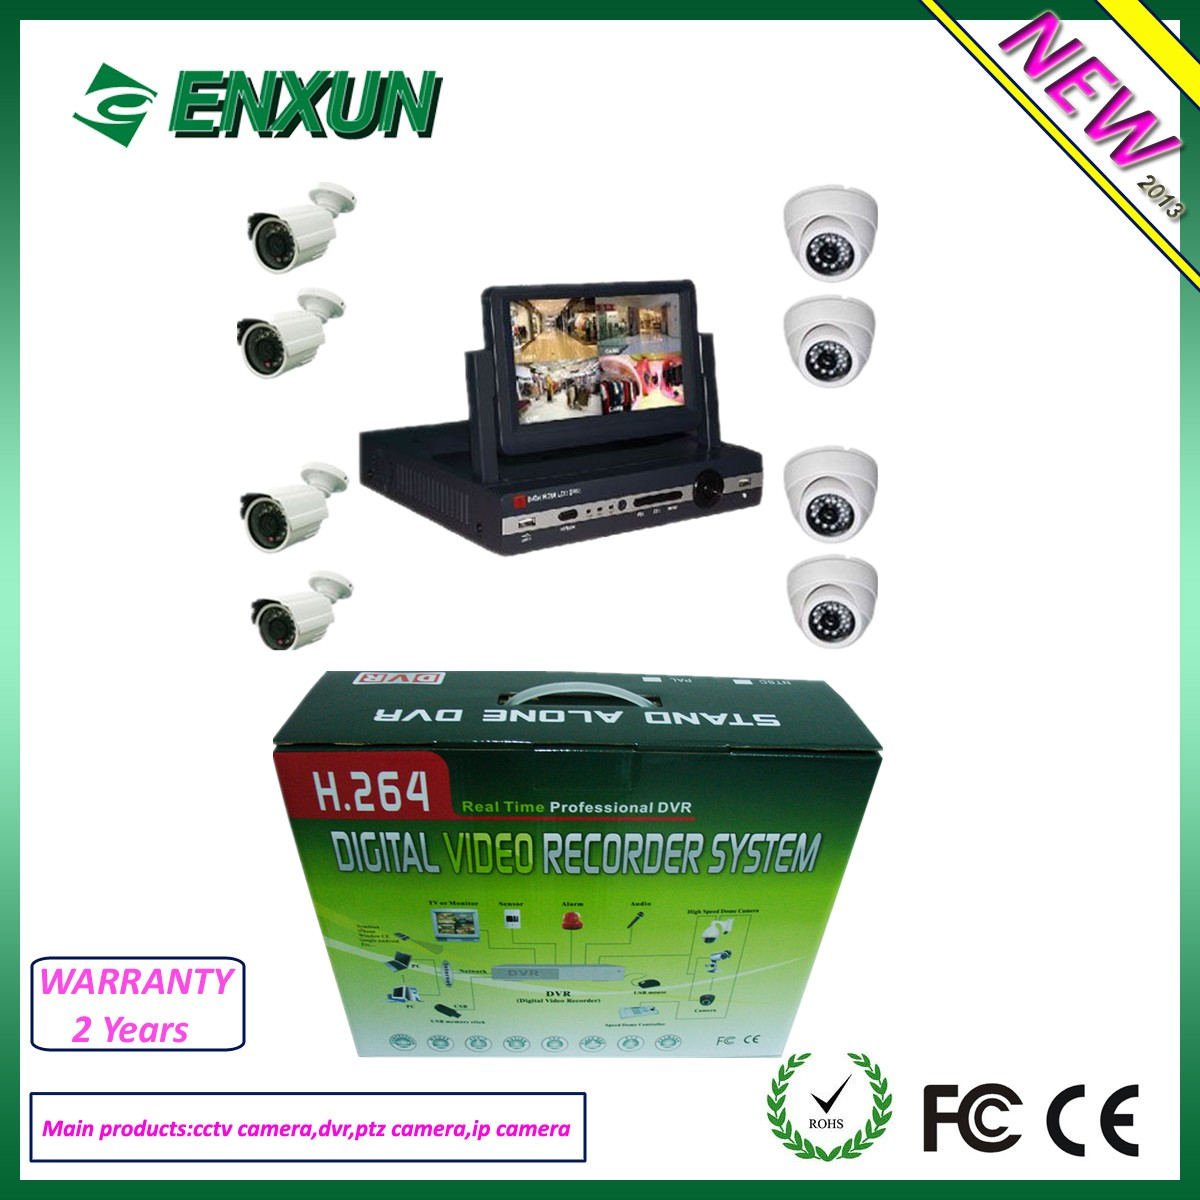 d1 technology cctv camera system COMPLETE Camera DVR System security camera system